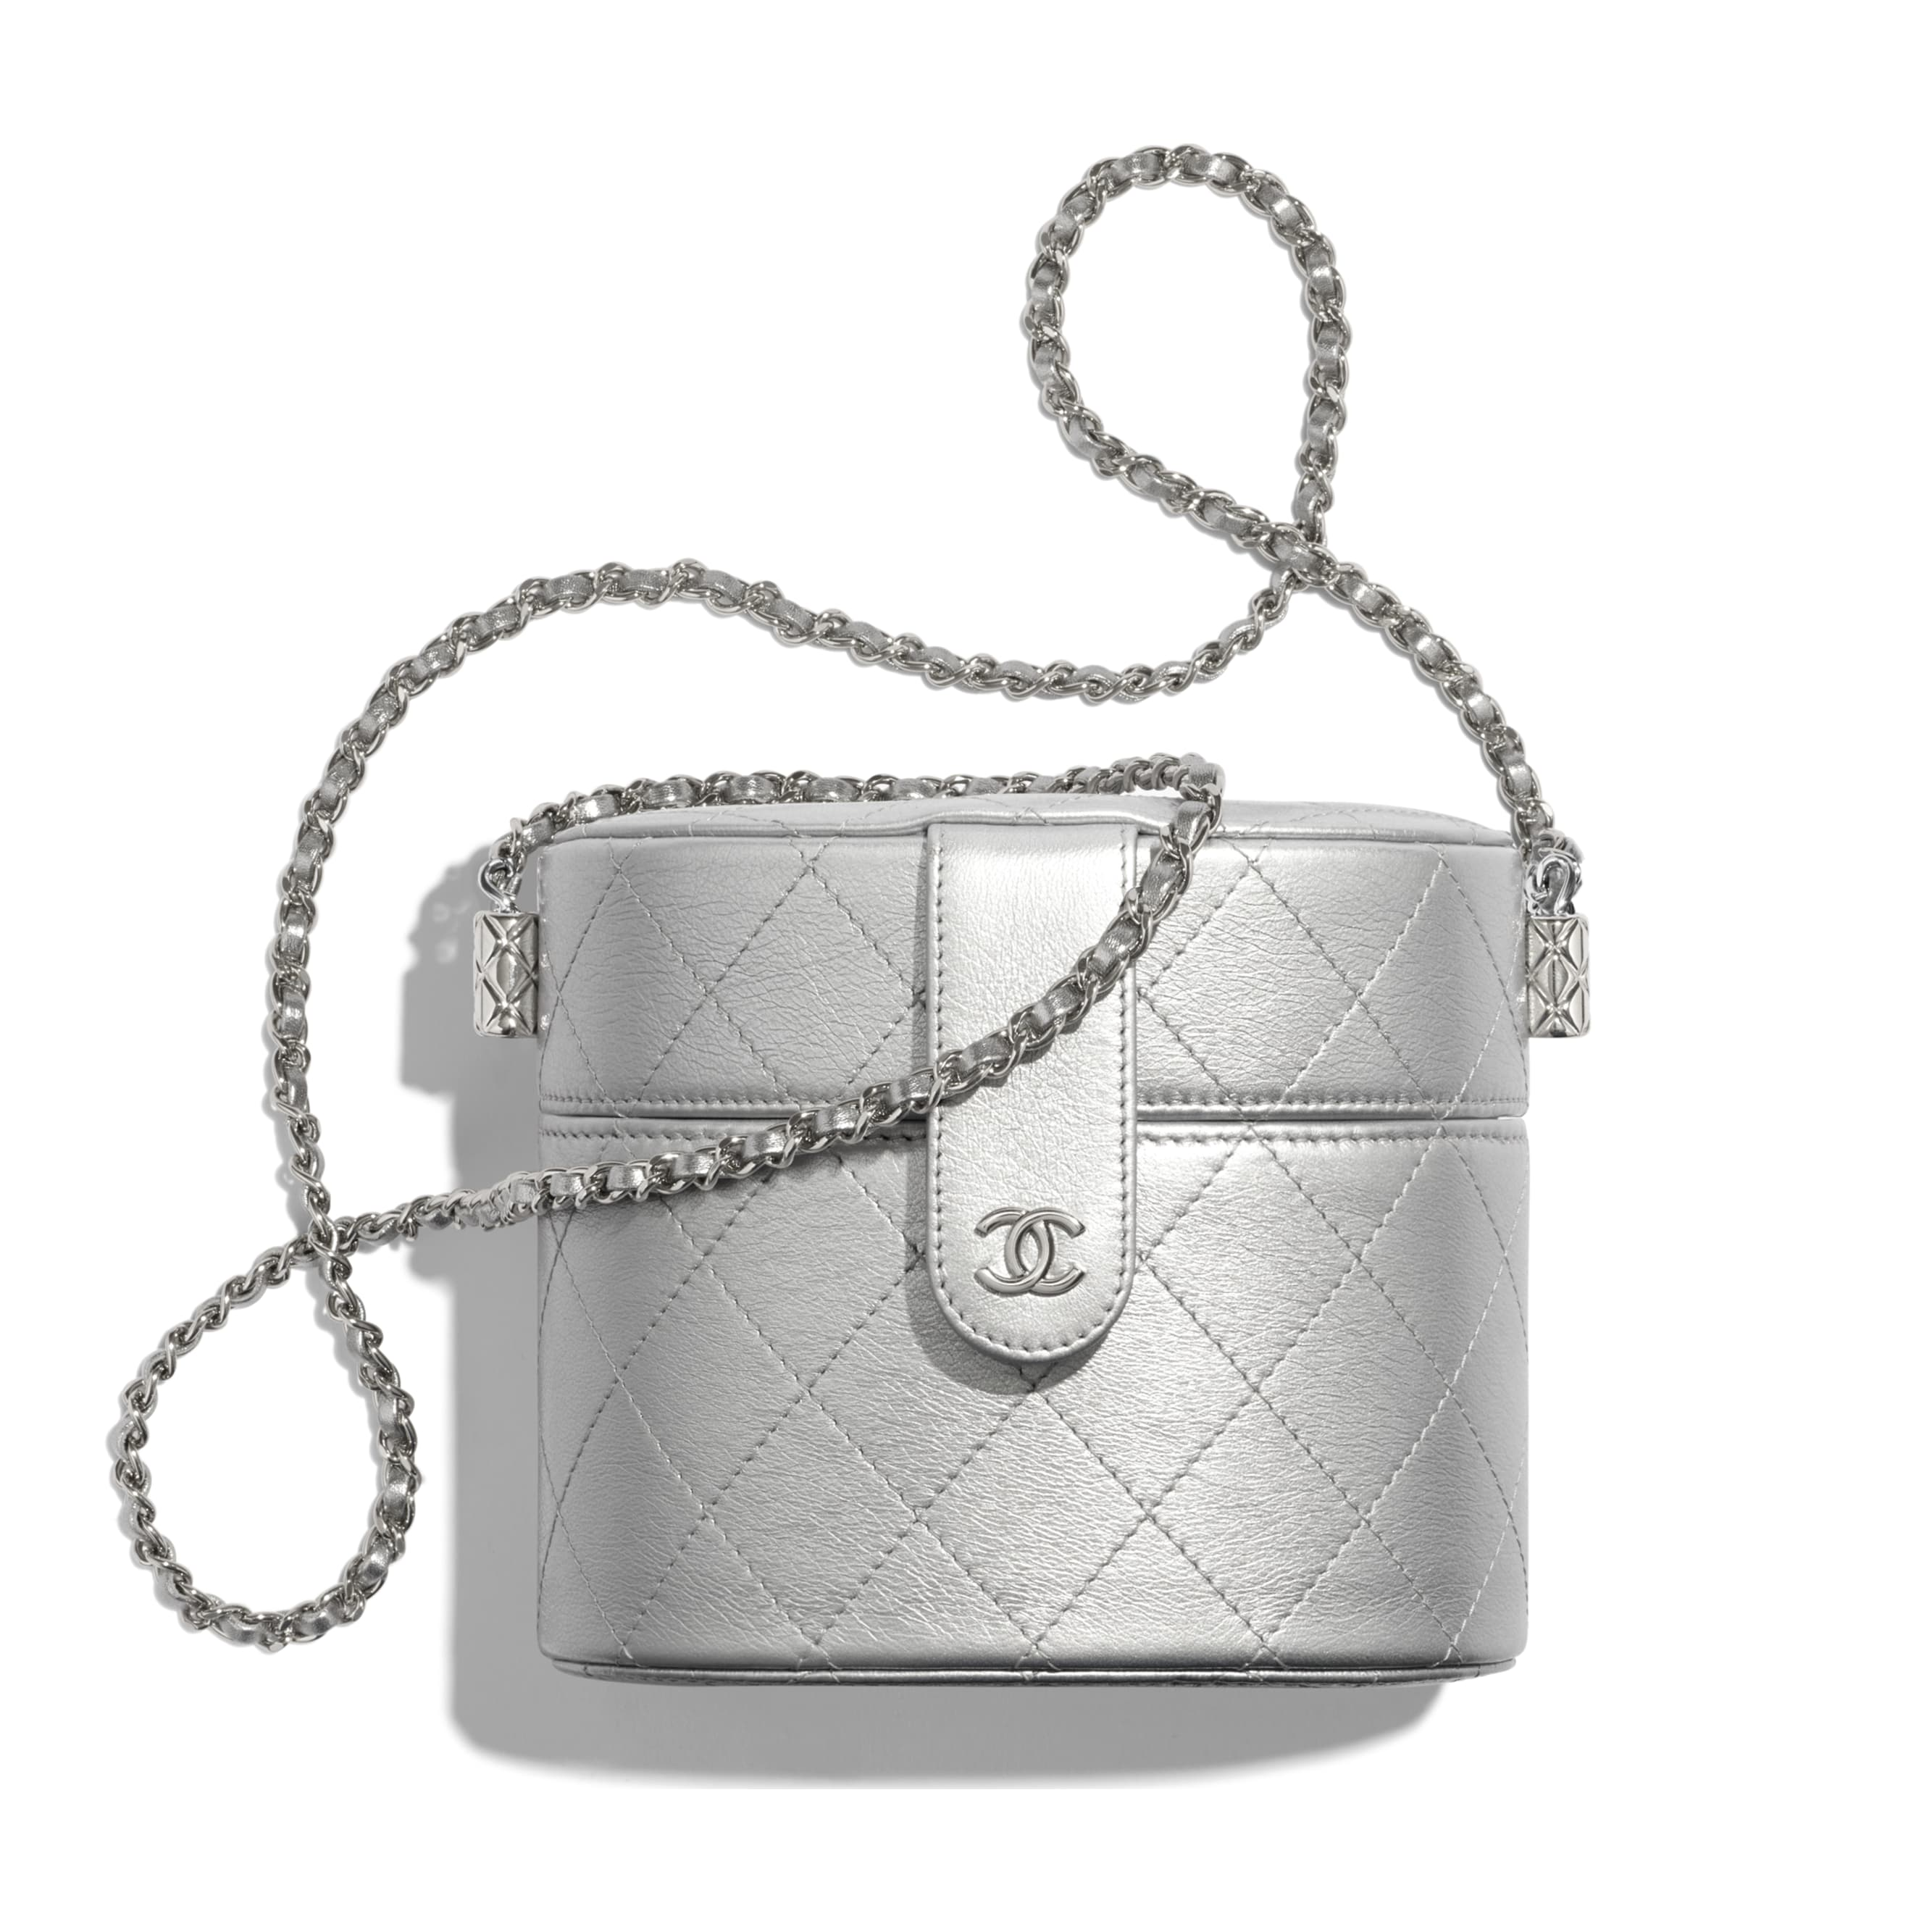 Clutch with Chain - Silver - Metallic Lambskin & Silver-Tone Metal - CHANEL - Default view - see standard sized version